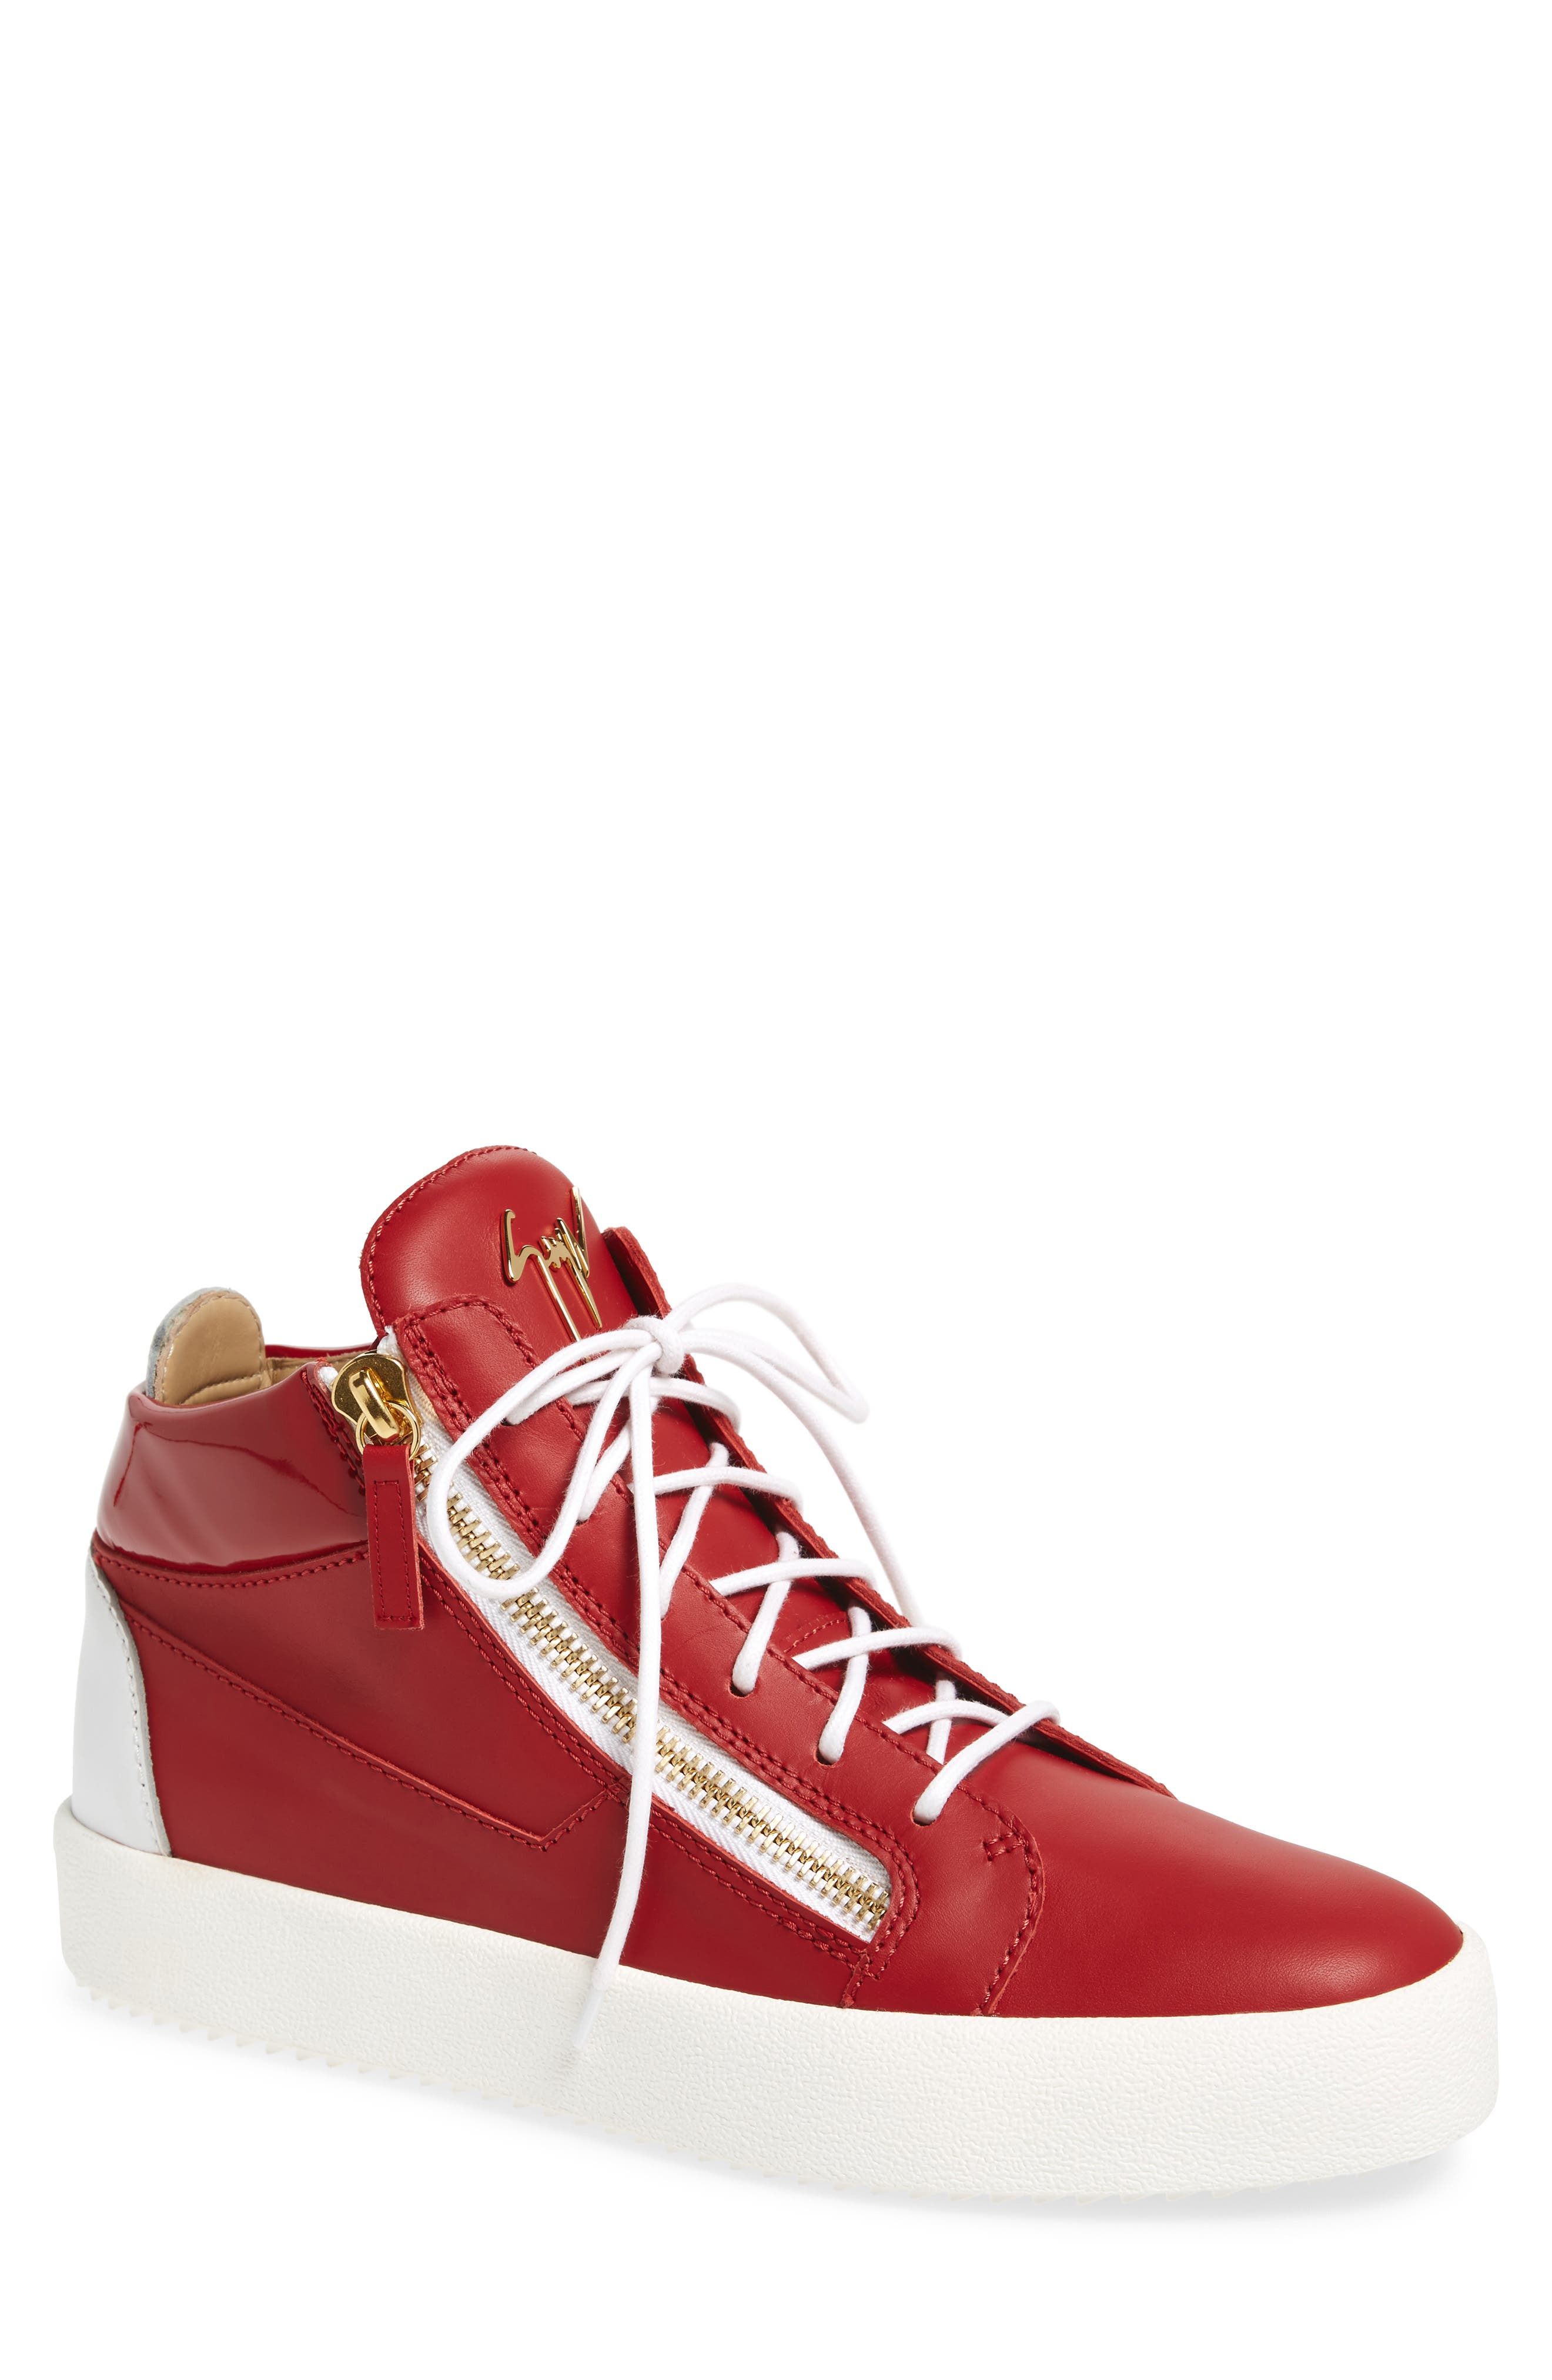 Double Zipper Mid Top Sneaker,                             Main thumbnail 1, color,                             Red W/ White Leather